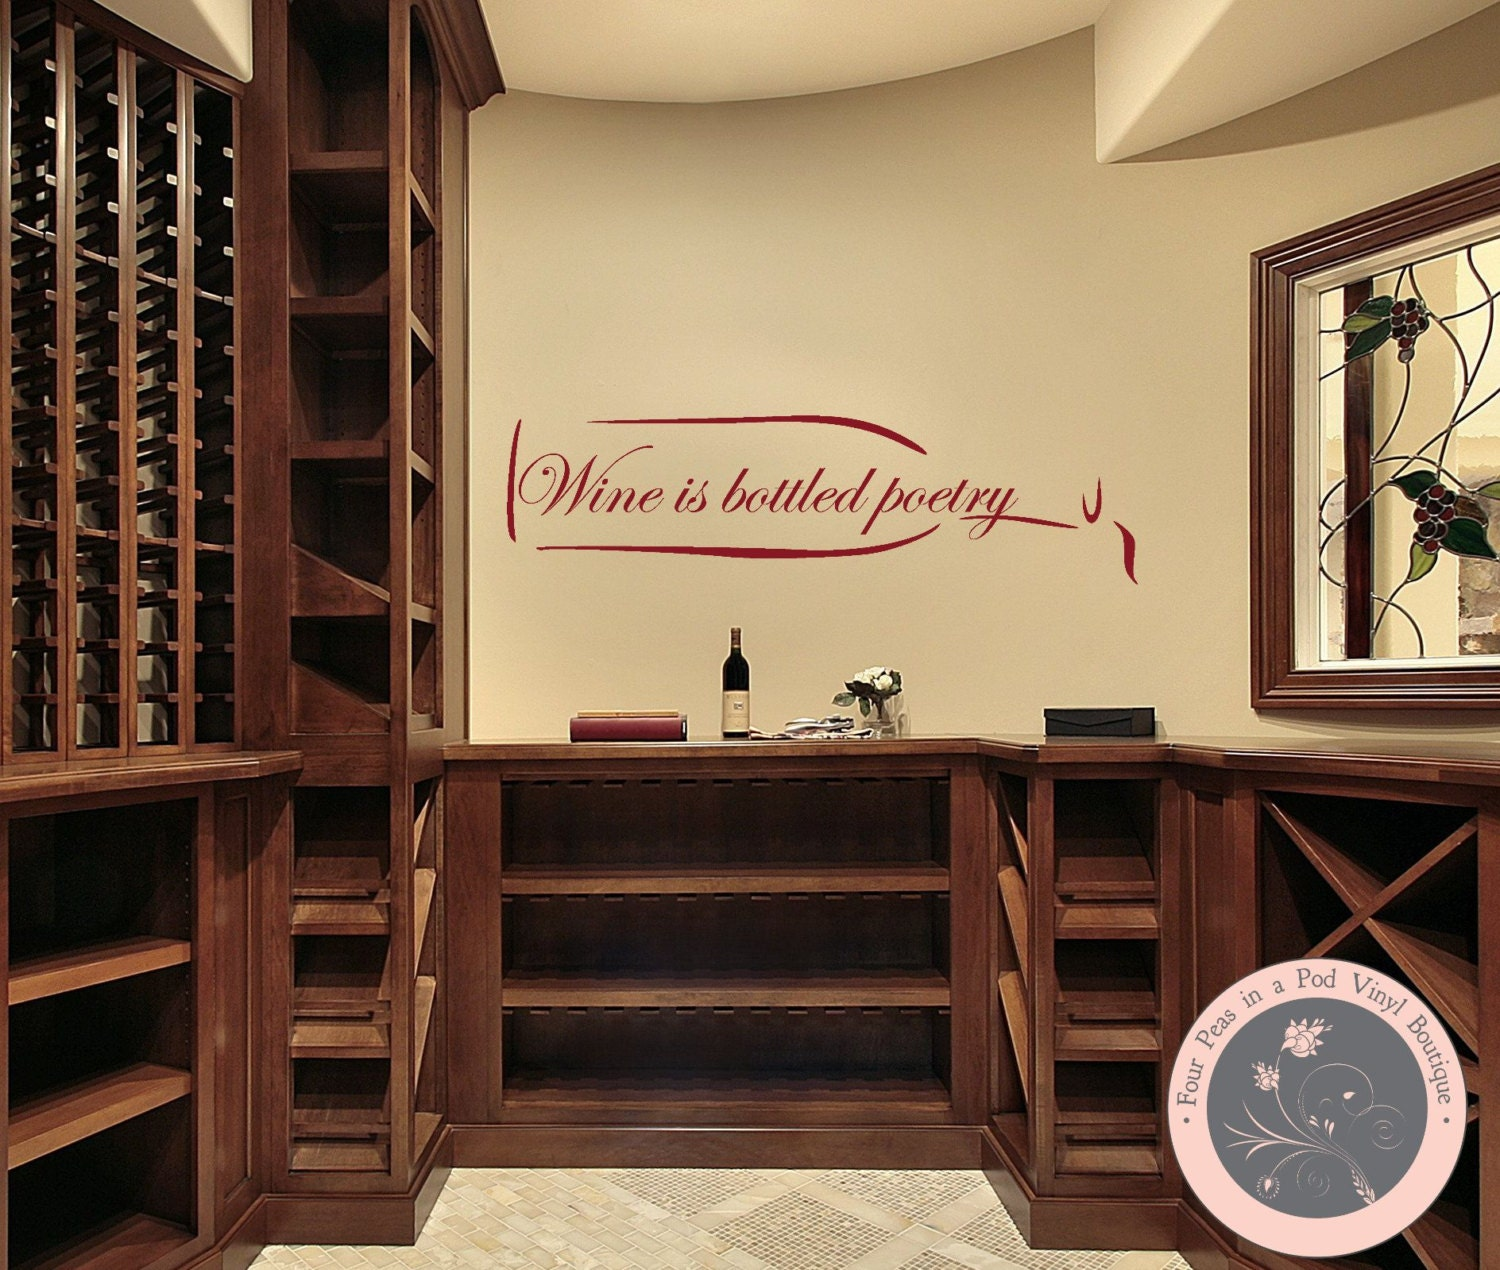 Kitchen Decor Wine Wall Decal Kitchen Wall Decal Wine Wall